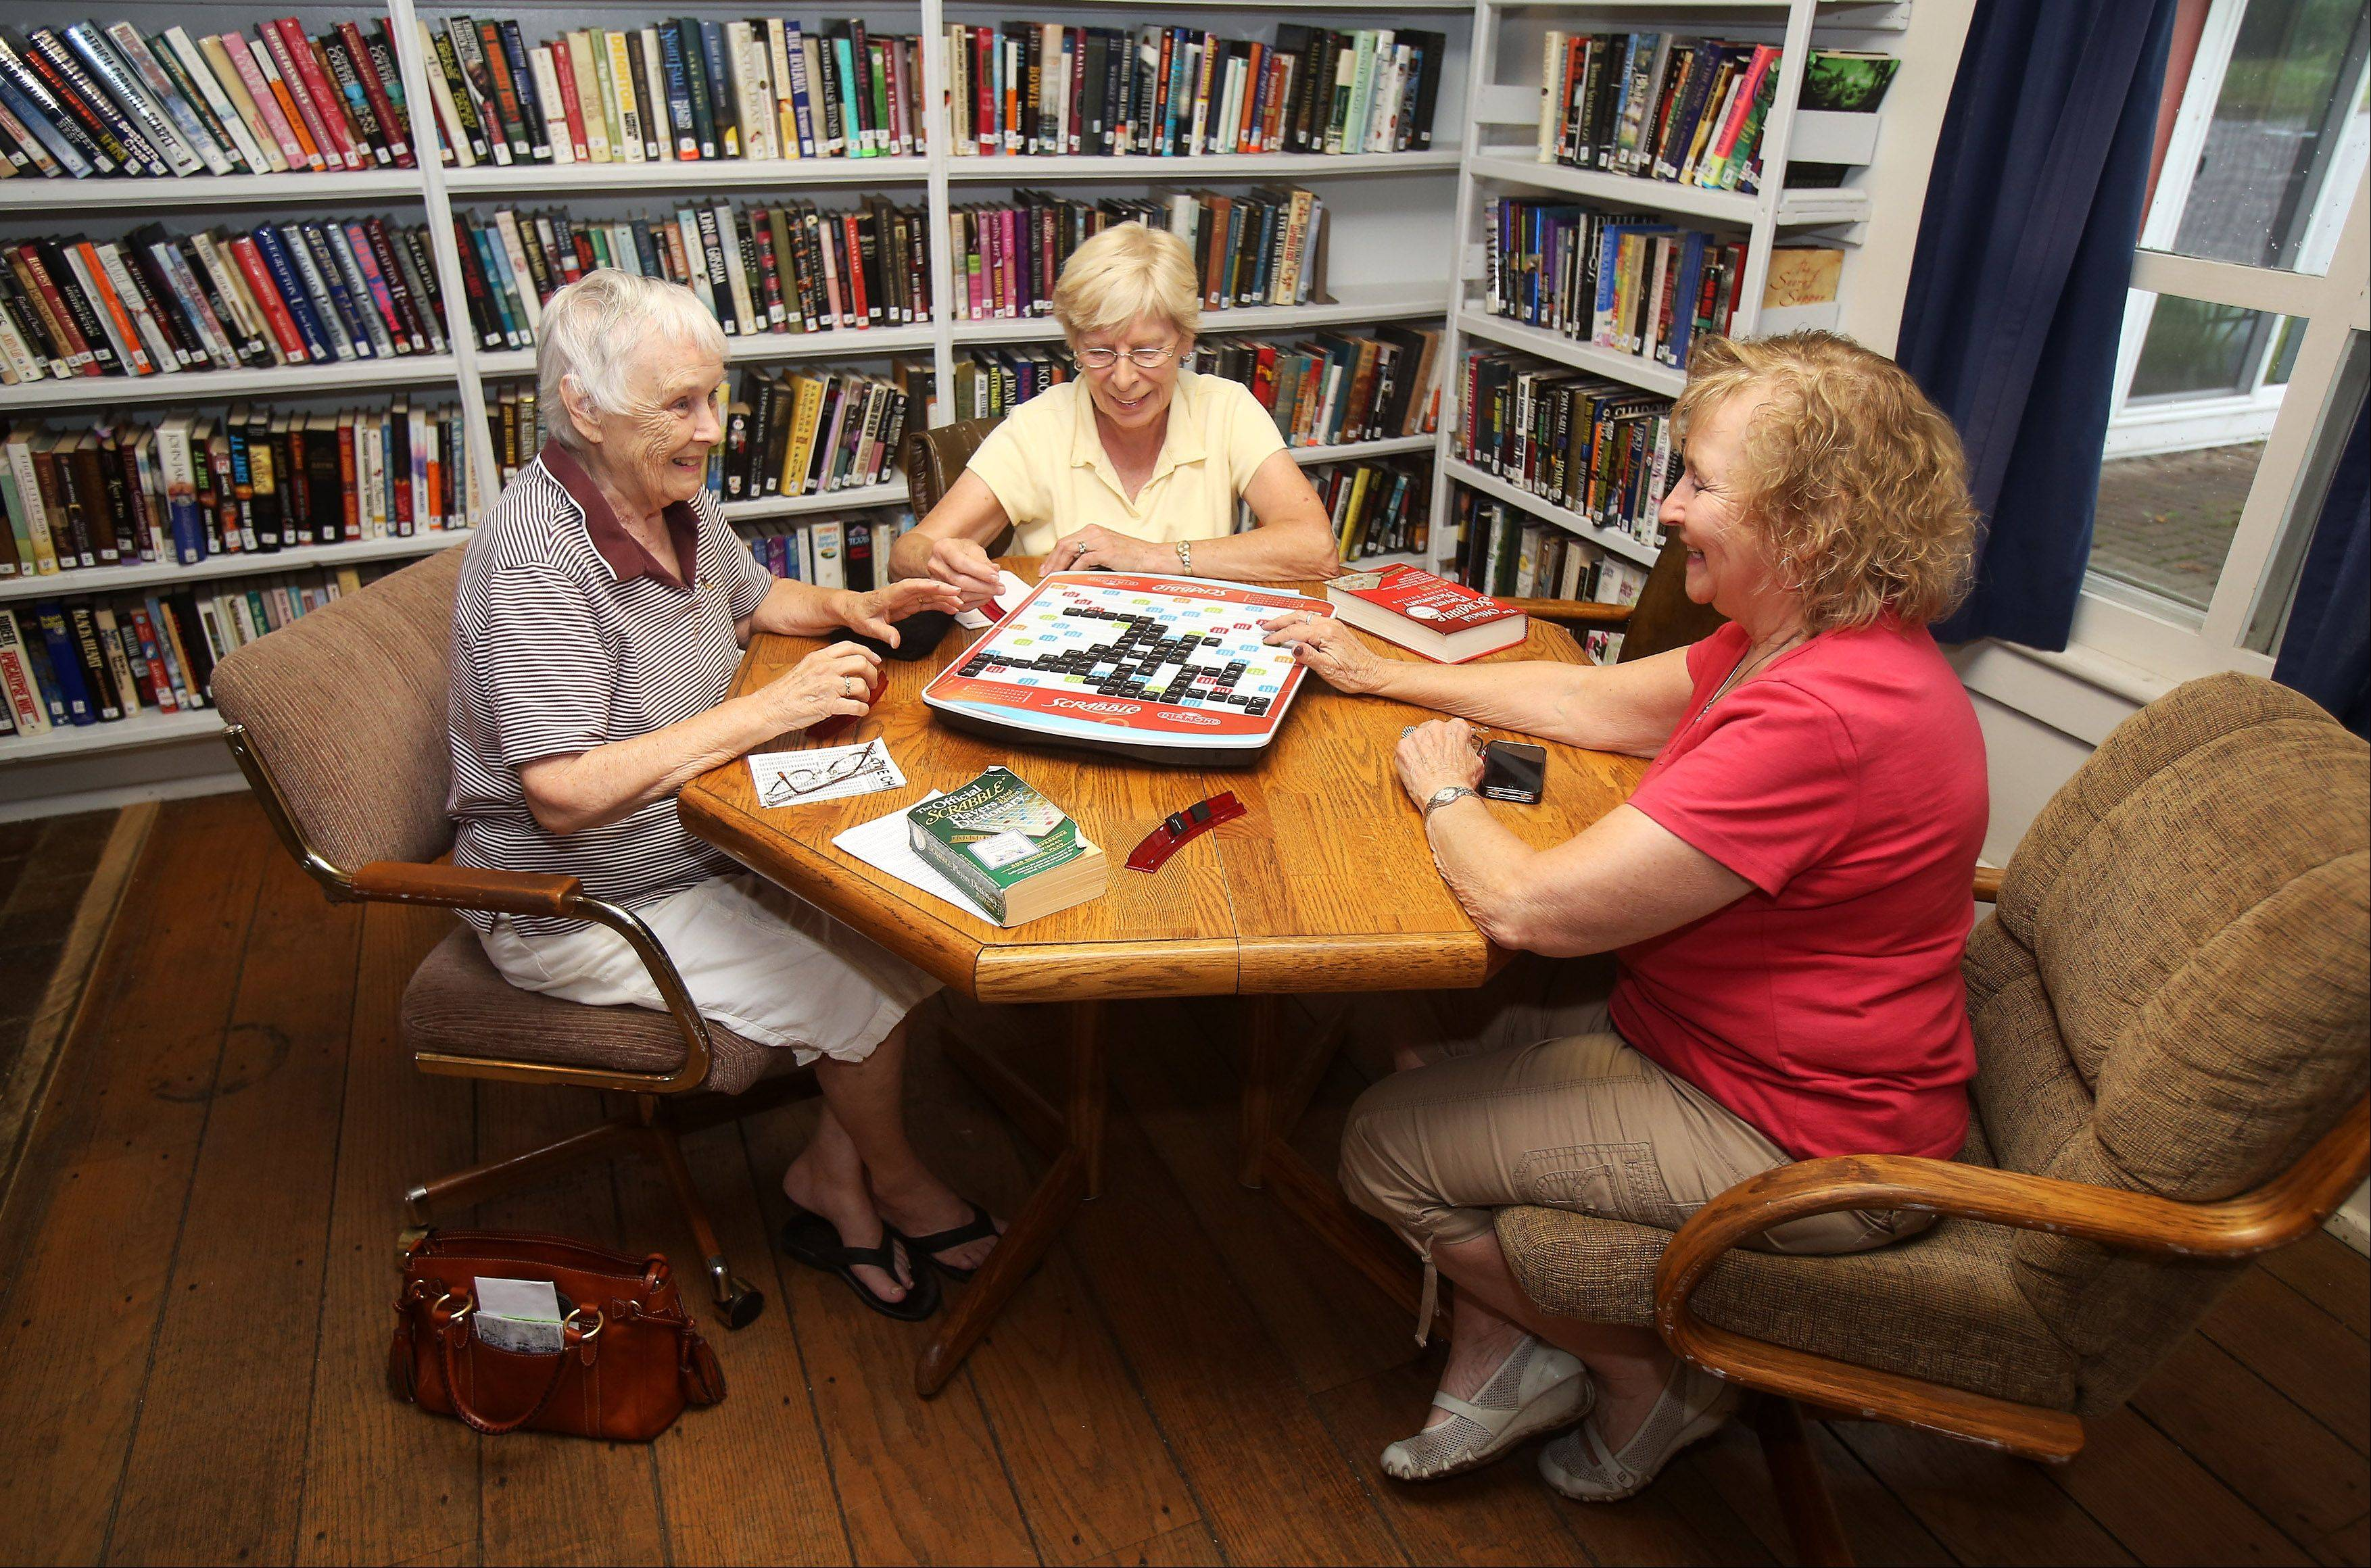 Jeri Schmidt, left, Helen Stumpf, and Sheila Buckman play Scrabble in the community center at Saddlebrook Farms in Grayslake.